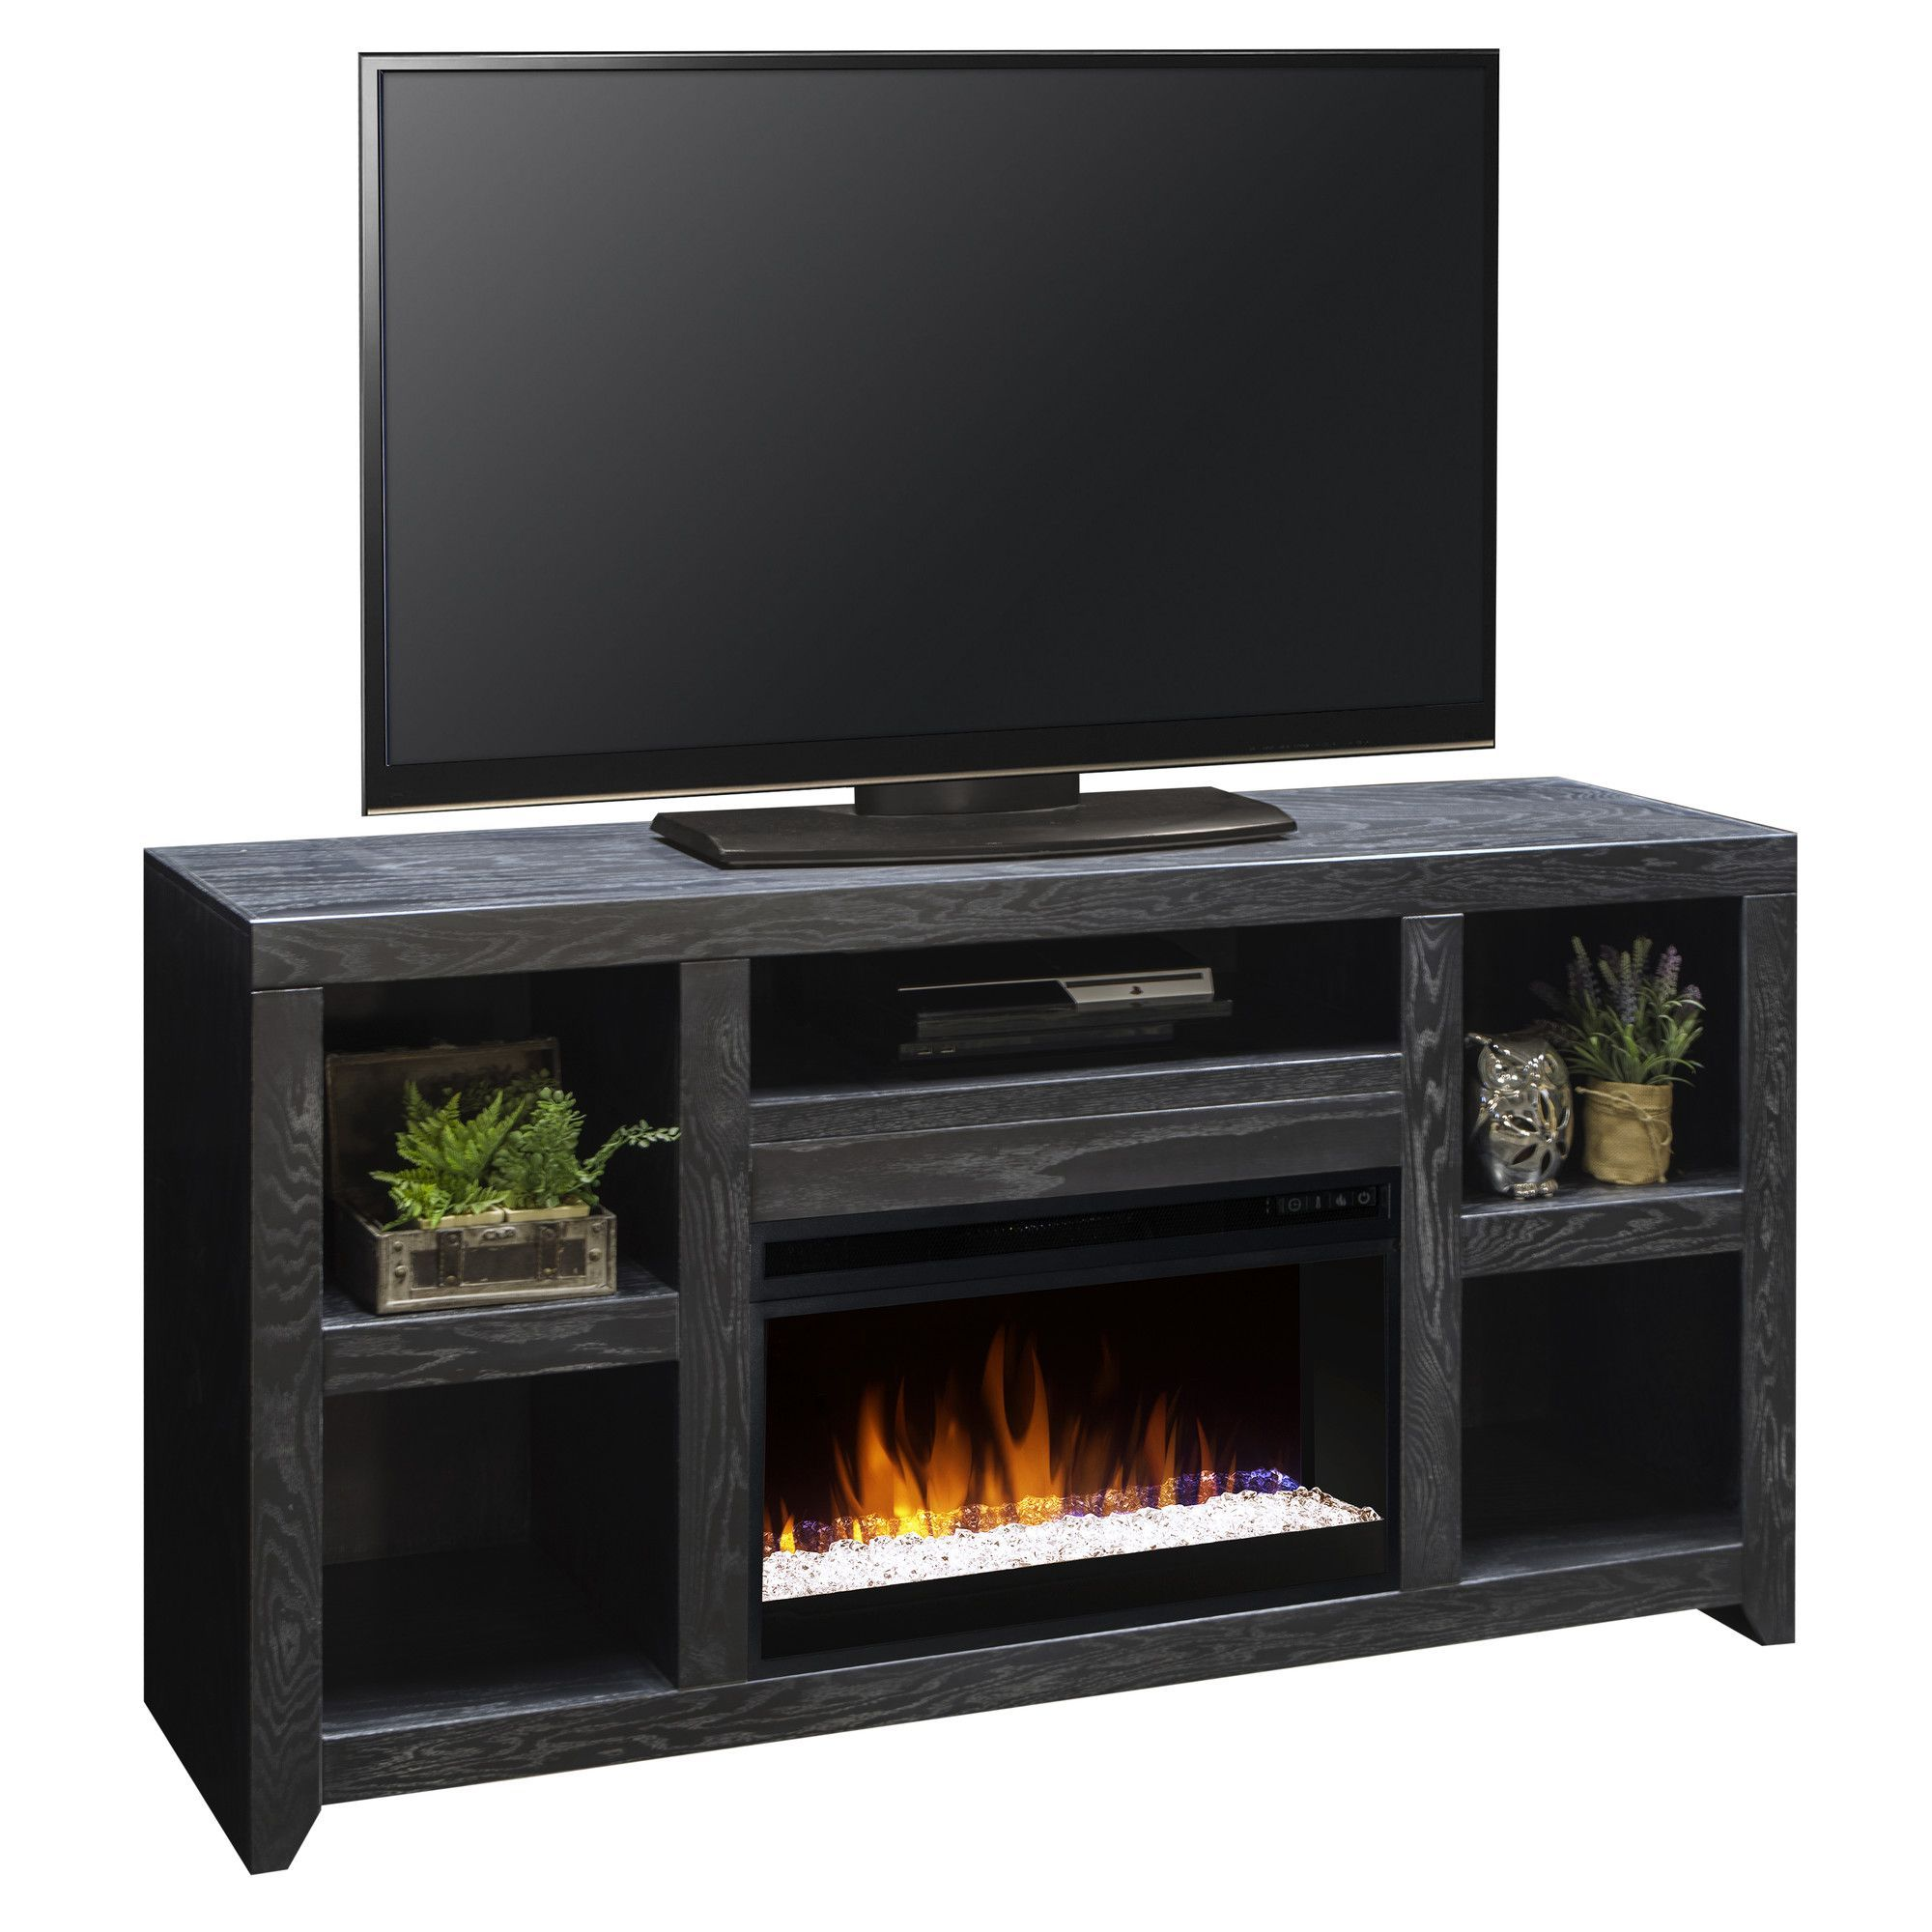 keystone tv stand with electric fireplace fireplaces pinterest